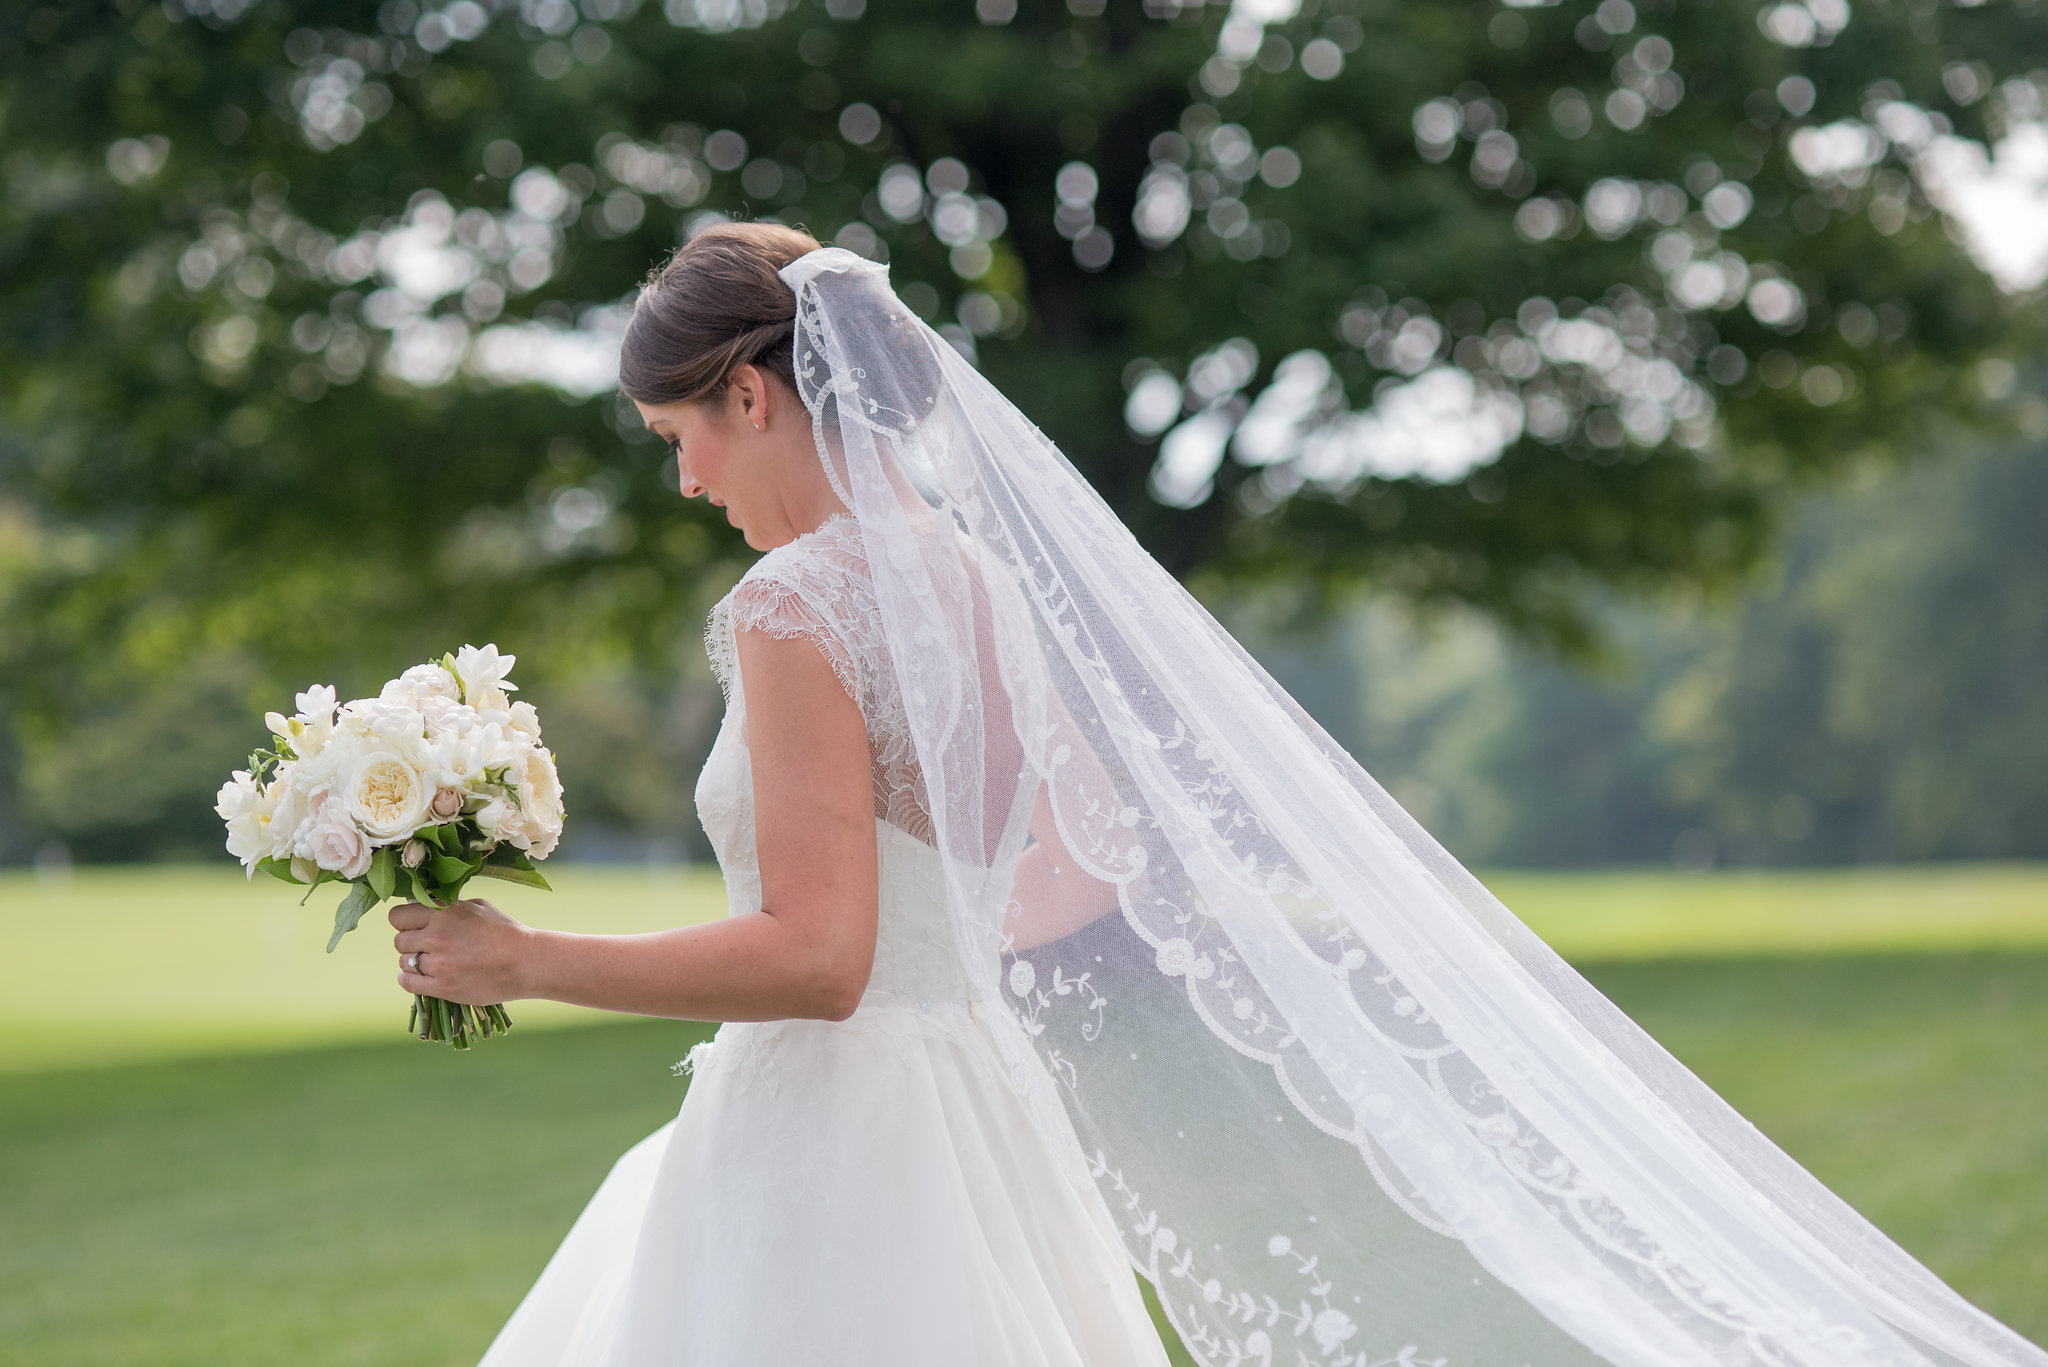 North Carolina Wedding, Events by Reagan, Destination Wedding Planner, Bride, Lace Wedding Dress, Veil, White flower bouquet